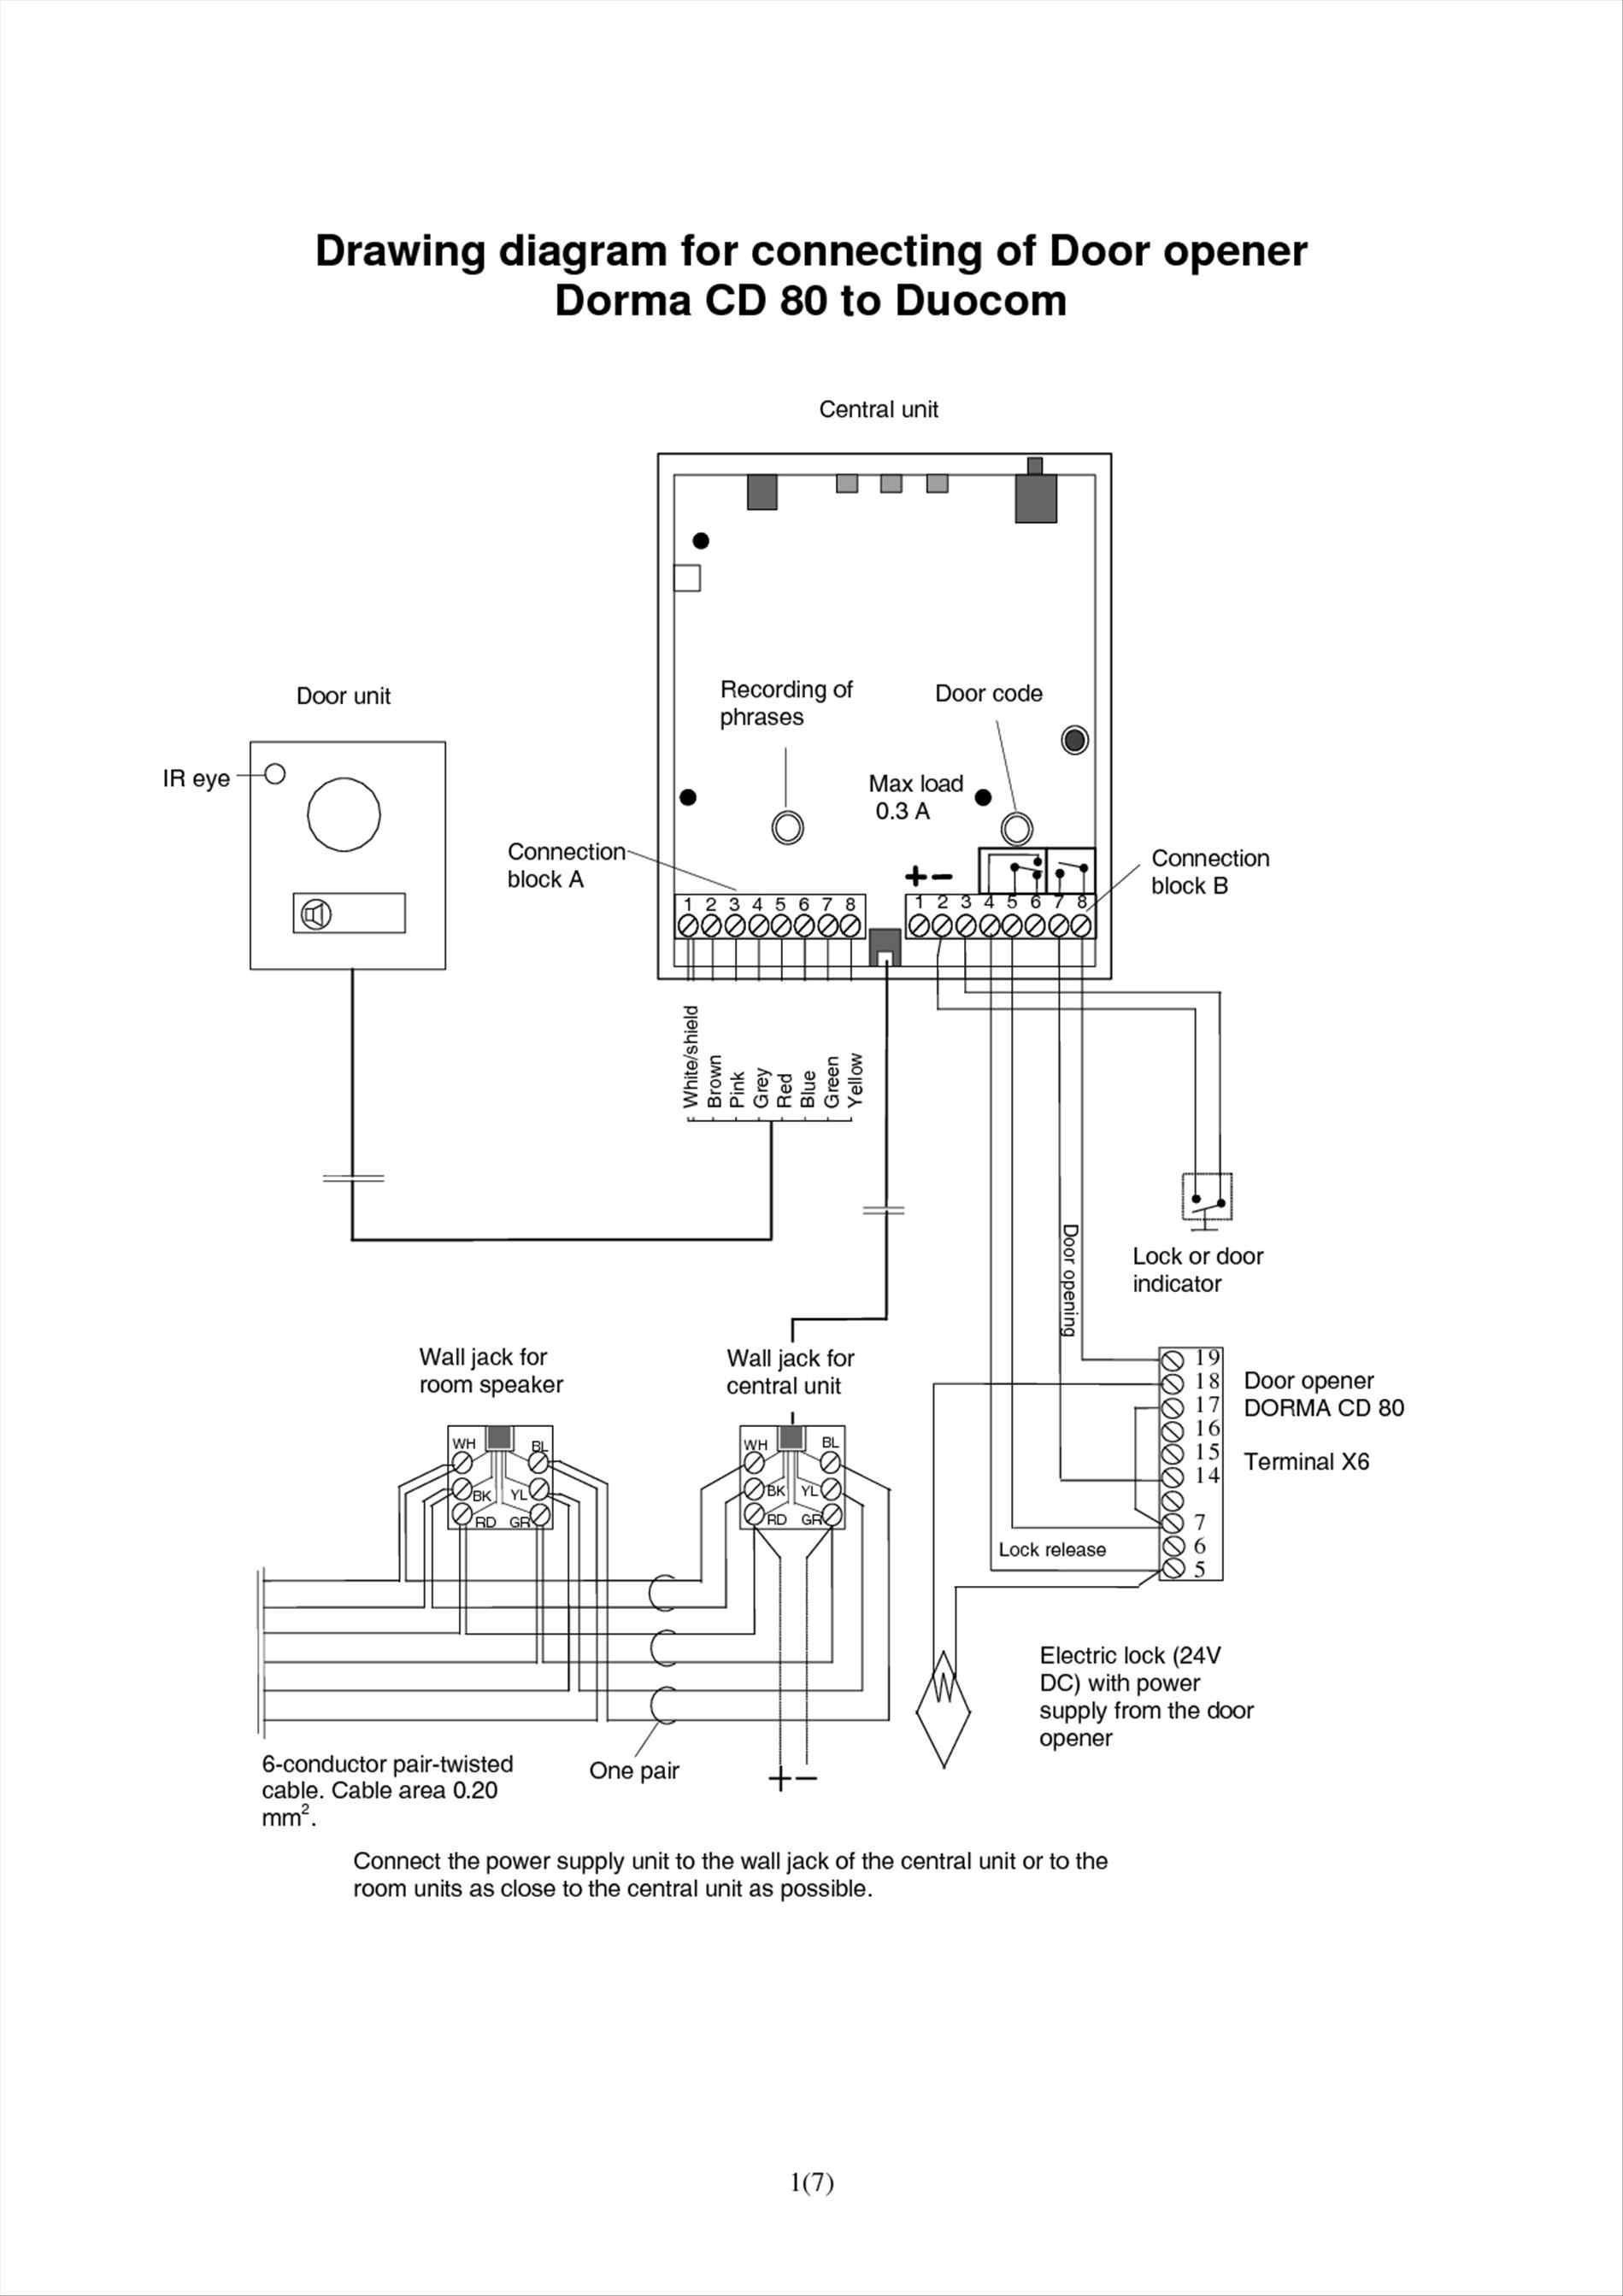 garage door opener wiring diagram for westinghouse chamberlain garage door wiring diagram | free wiring diagram garage door opener wiring diagram craftsman